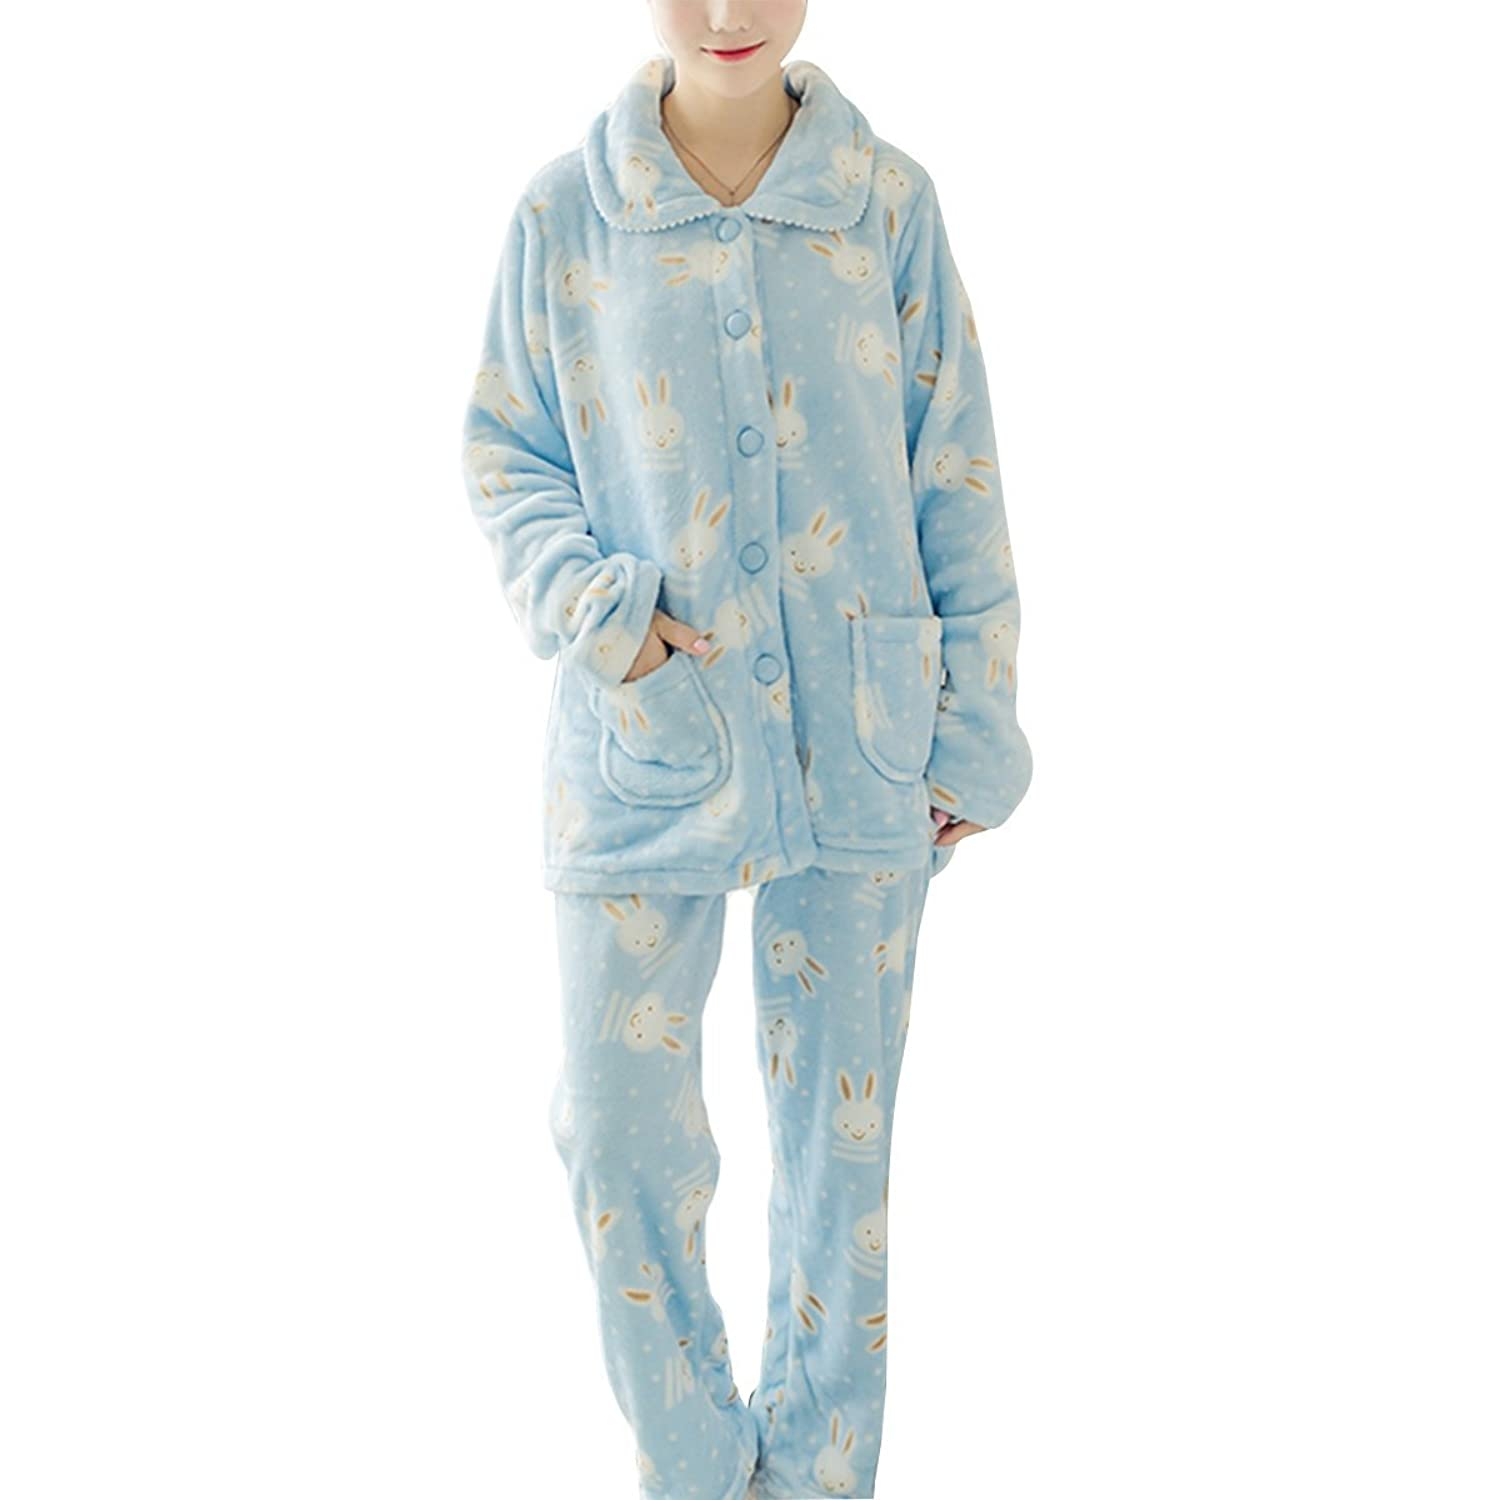 Cityelf Women's Autumn Winter Flannel Thick Homewear Over-Sized Sleepwear Set SYW0009